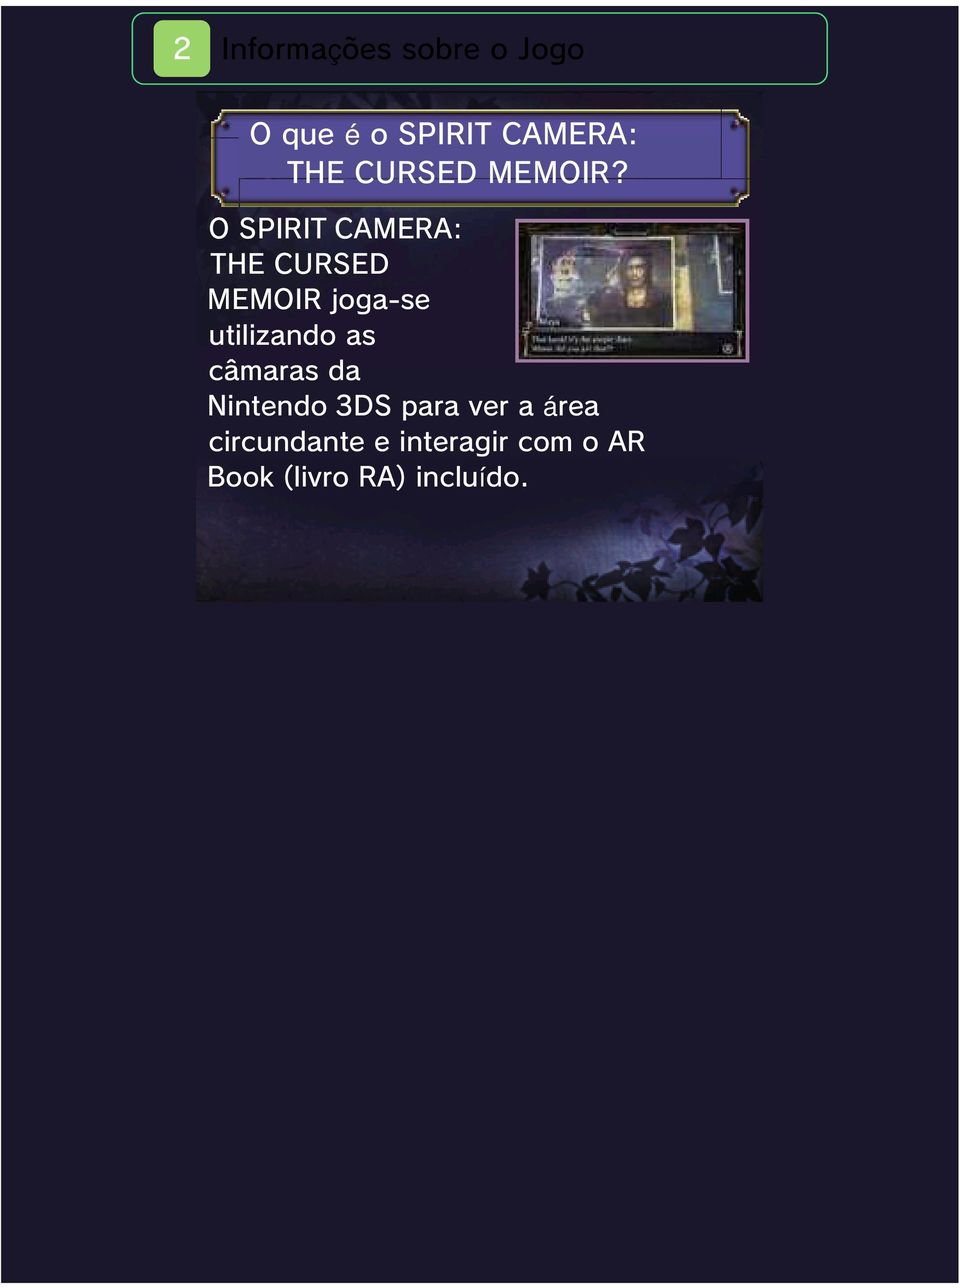 O SPIRIT CAMERA: THE CURSED MEMOIR joga-se utilizando as